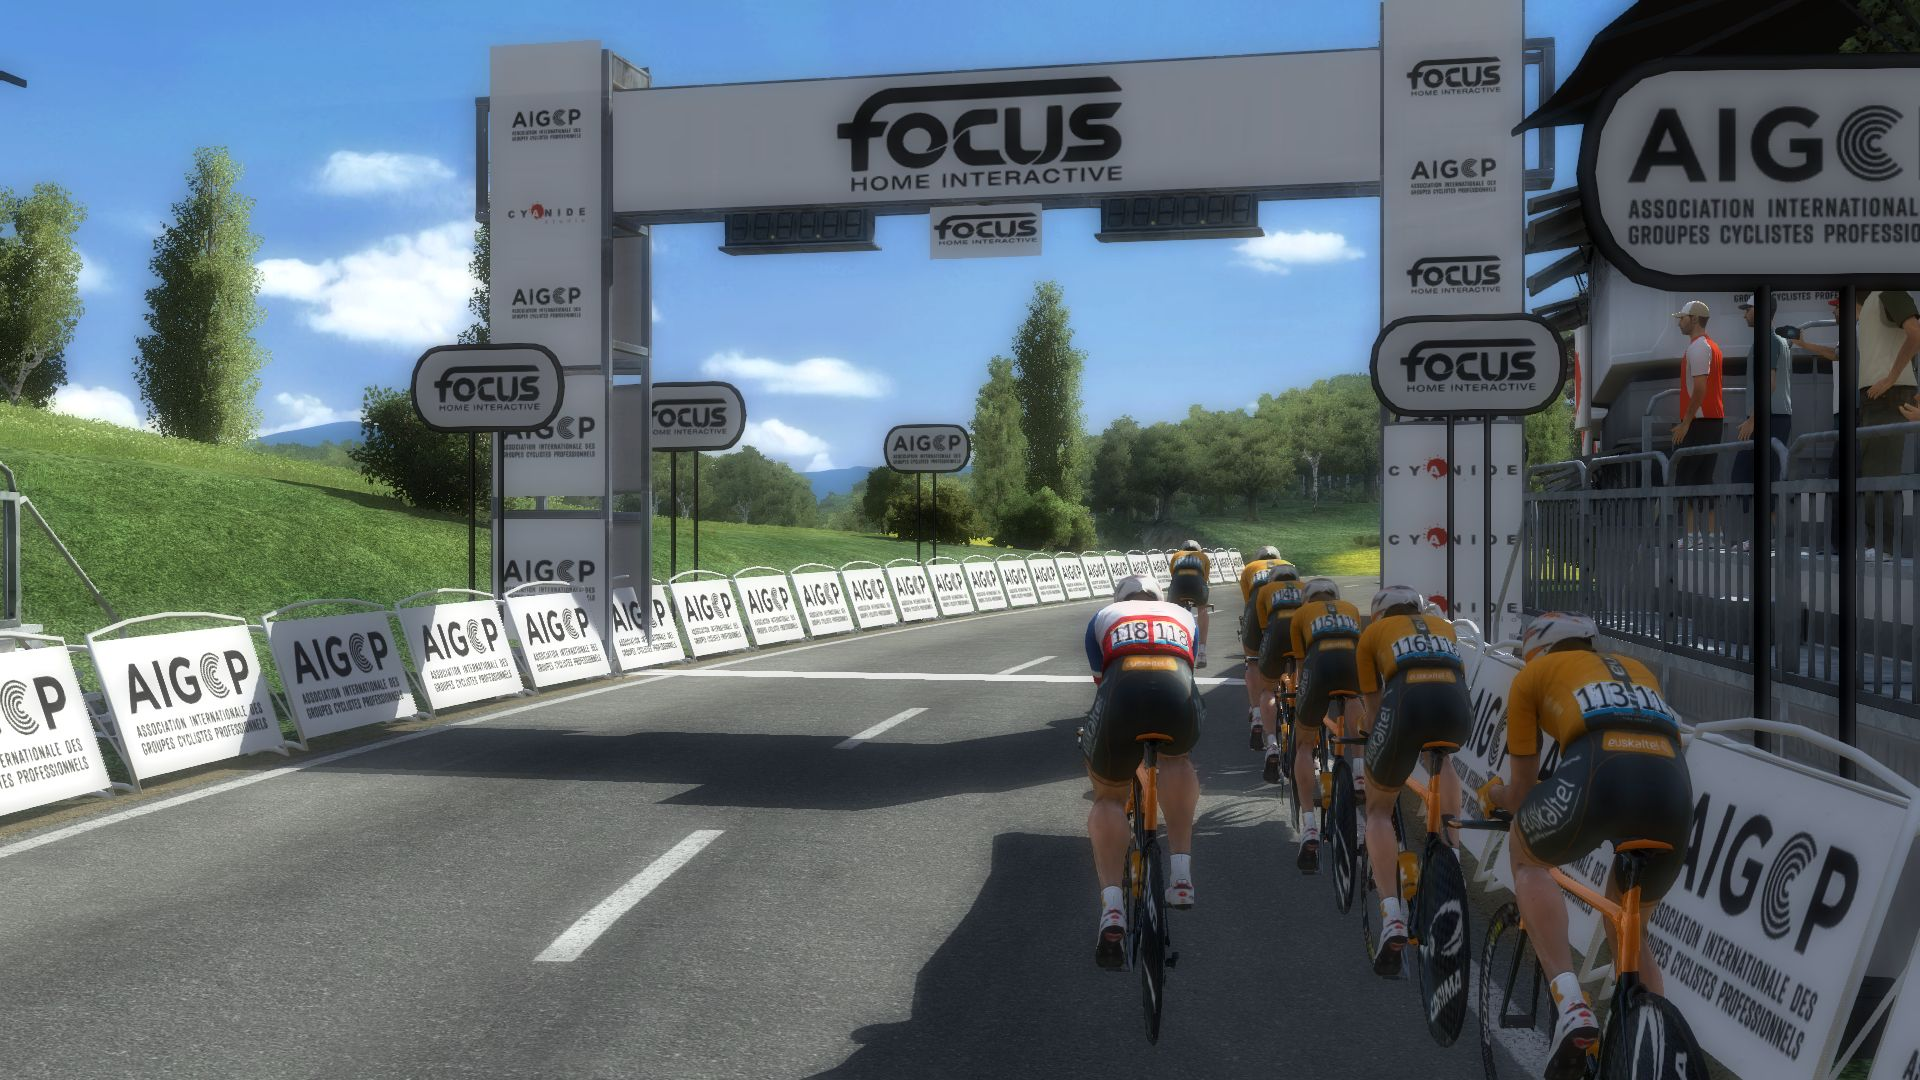 pcmdaily.com/images/mg/2019/Races/HC/Slovenie/mg19_slo_s01_31.jpg